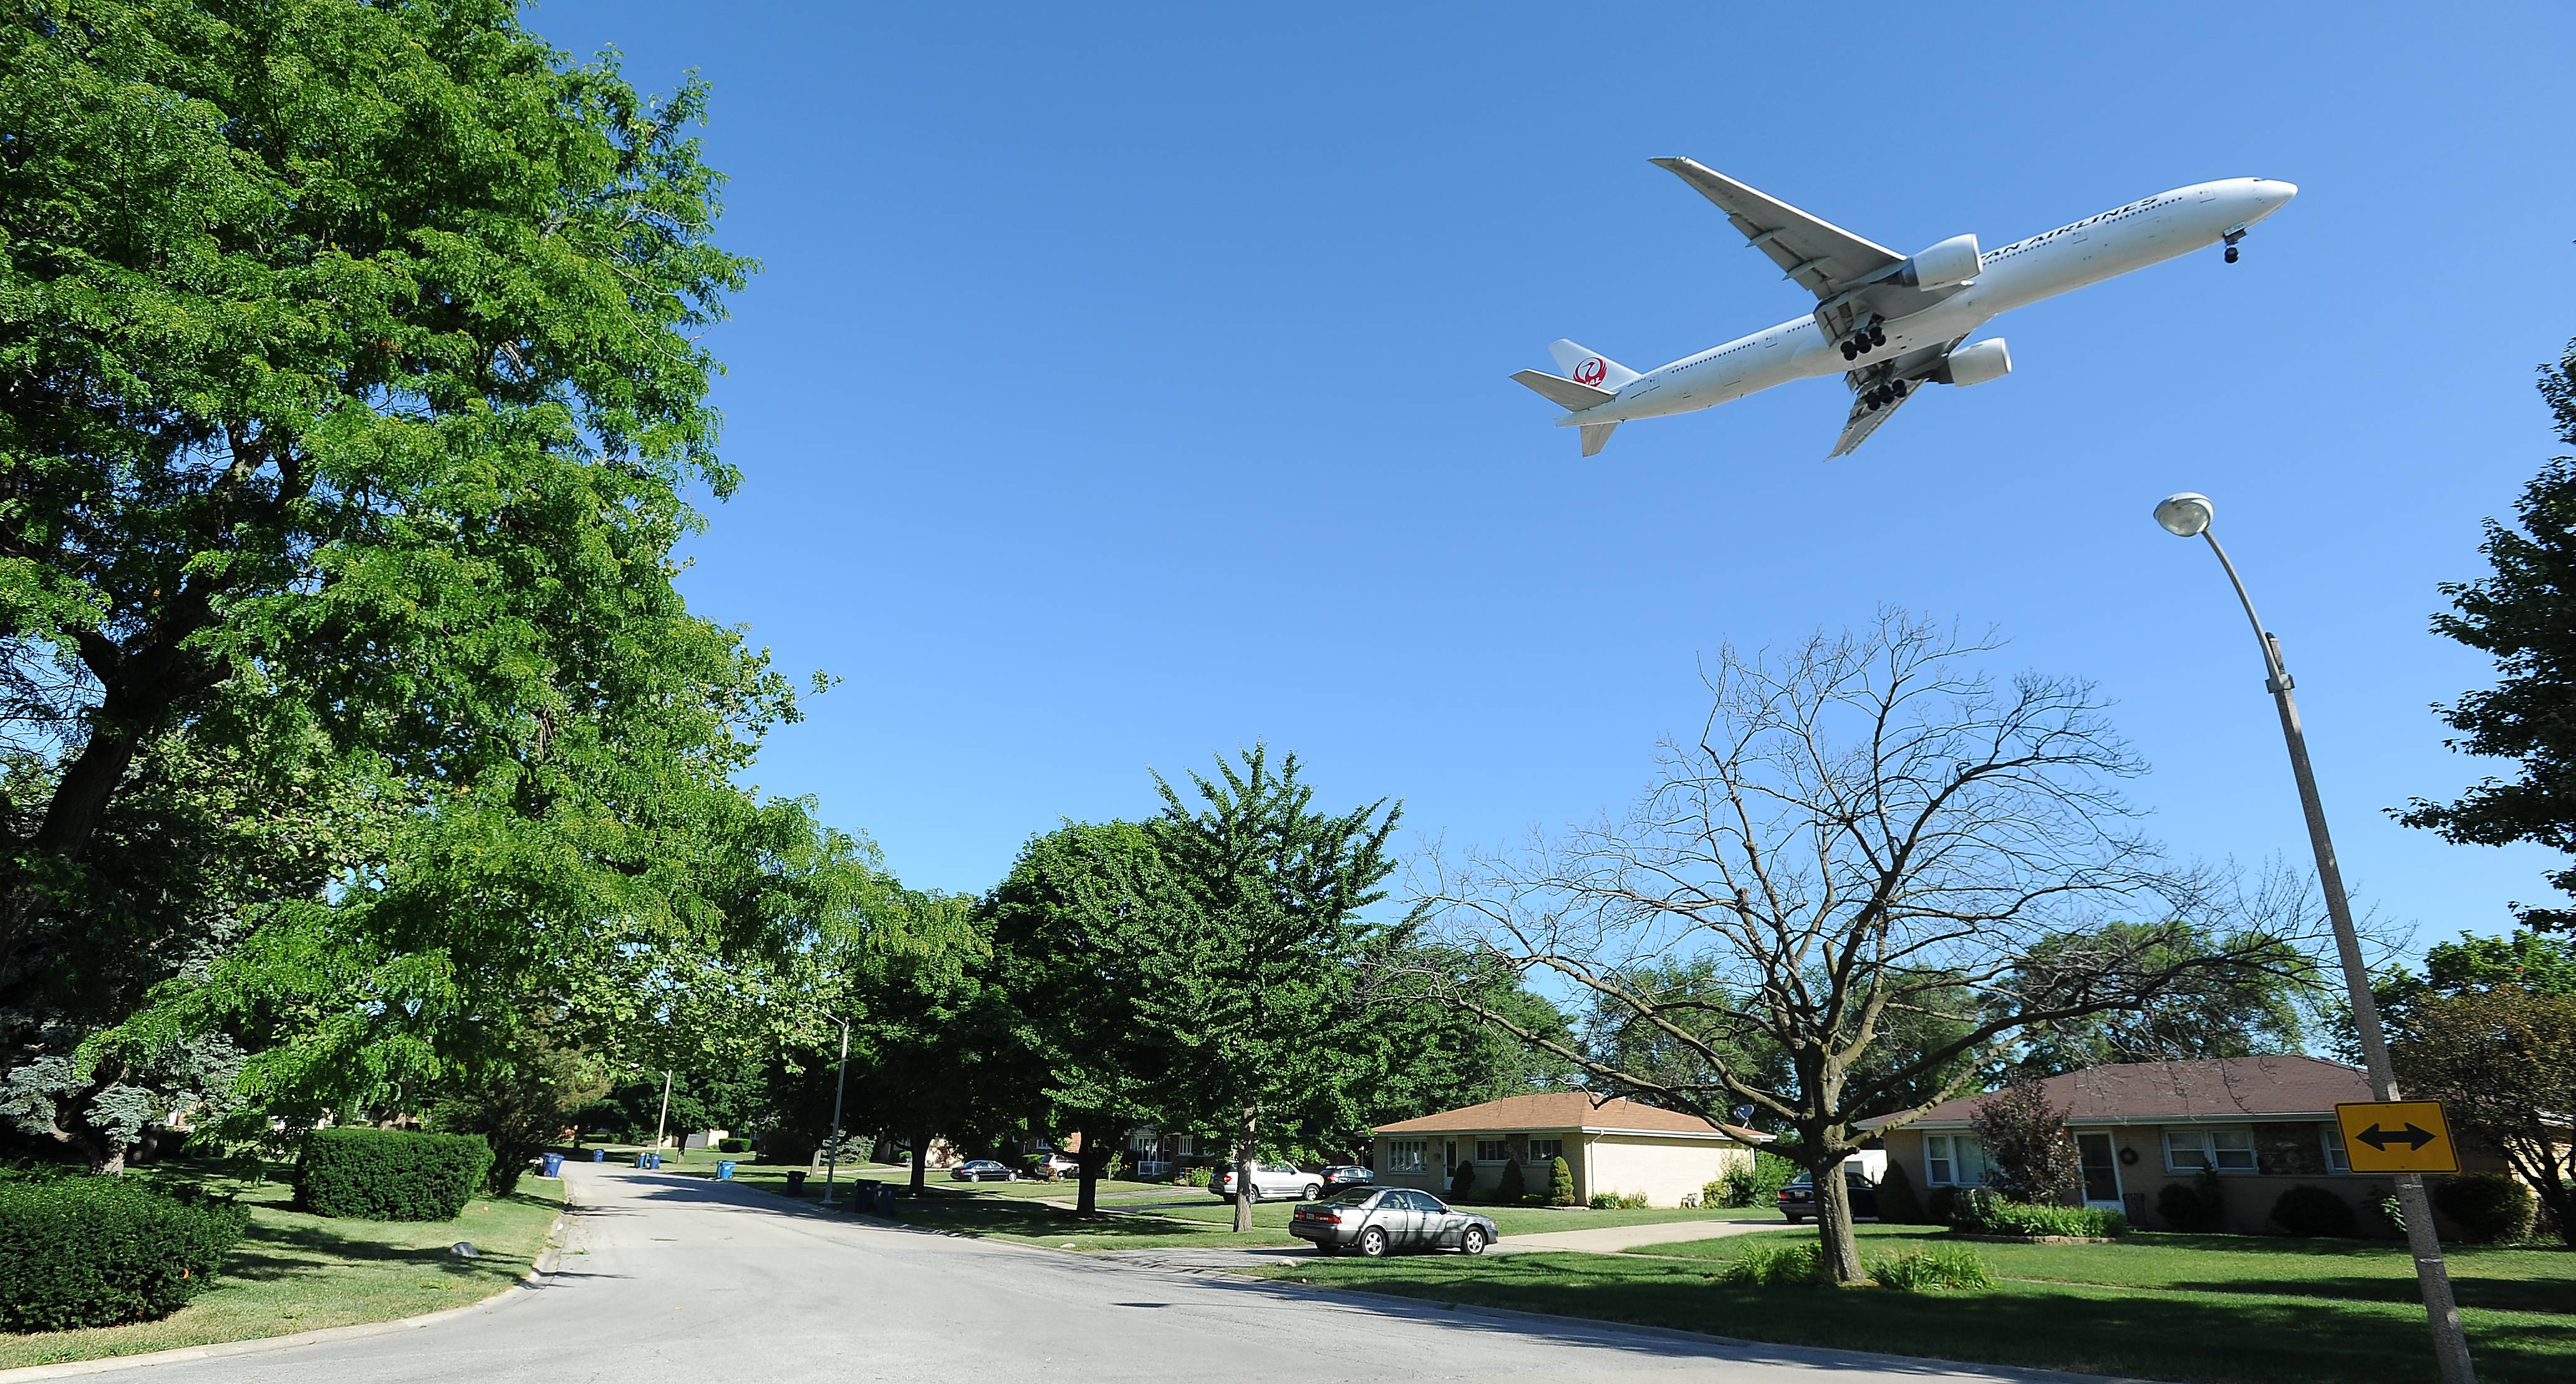 Lawsuit by Bensenville residents over O'Hare noise gains momentum